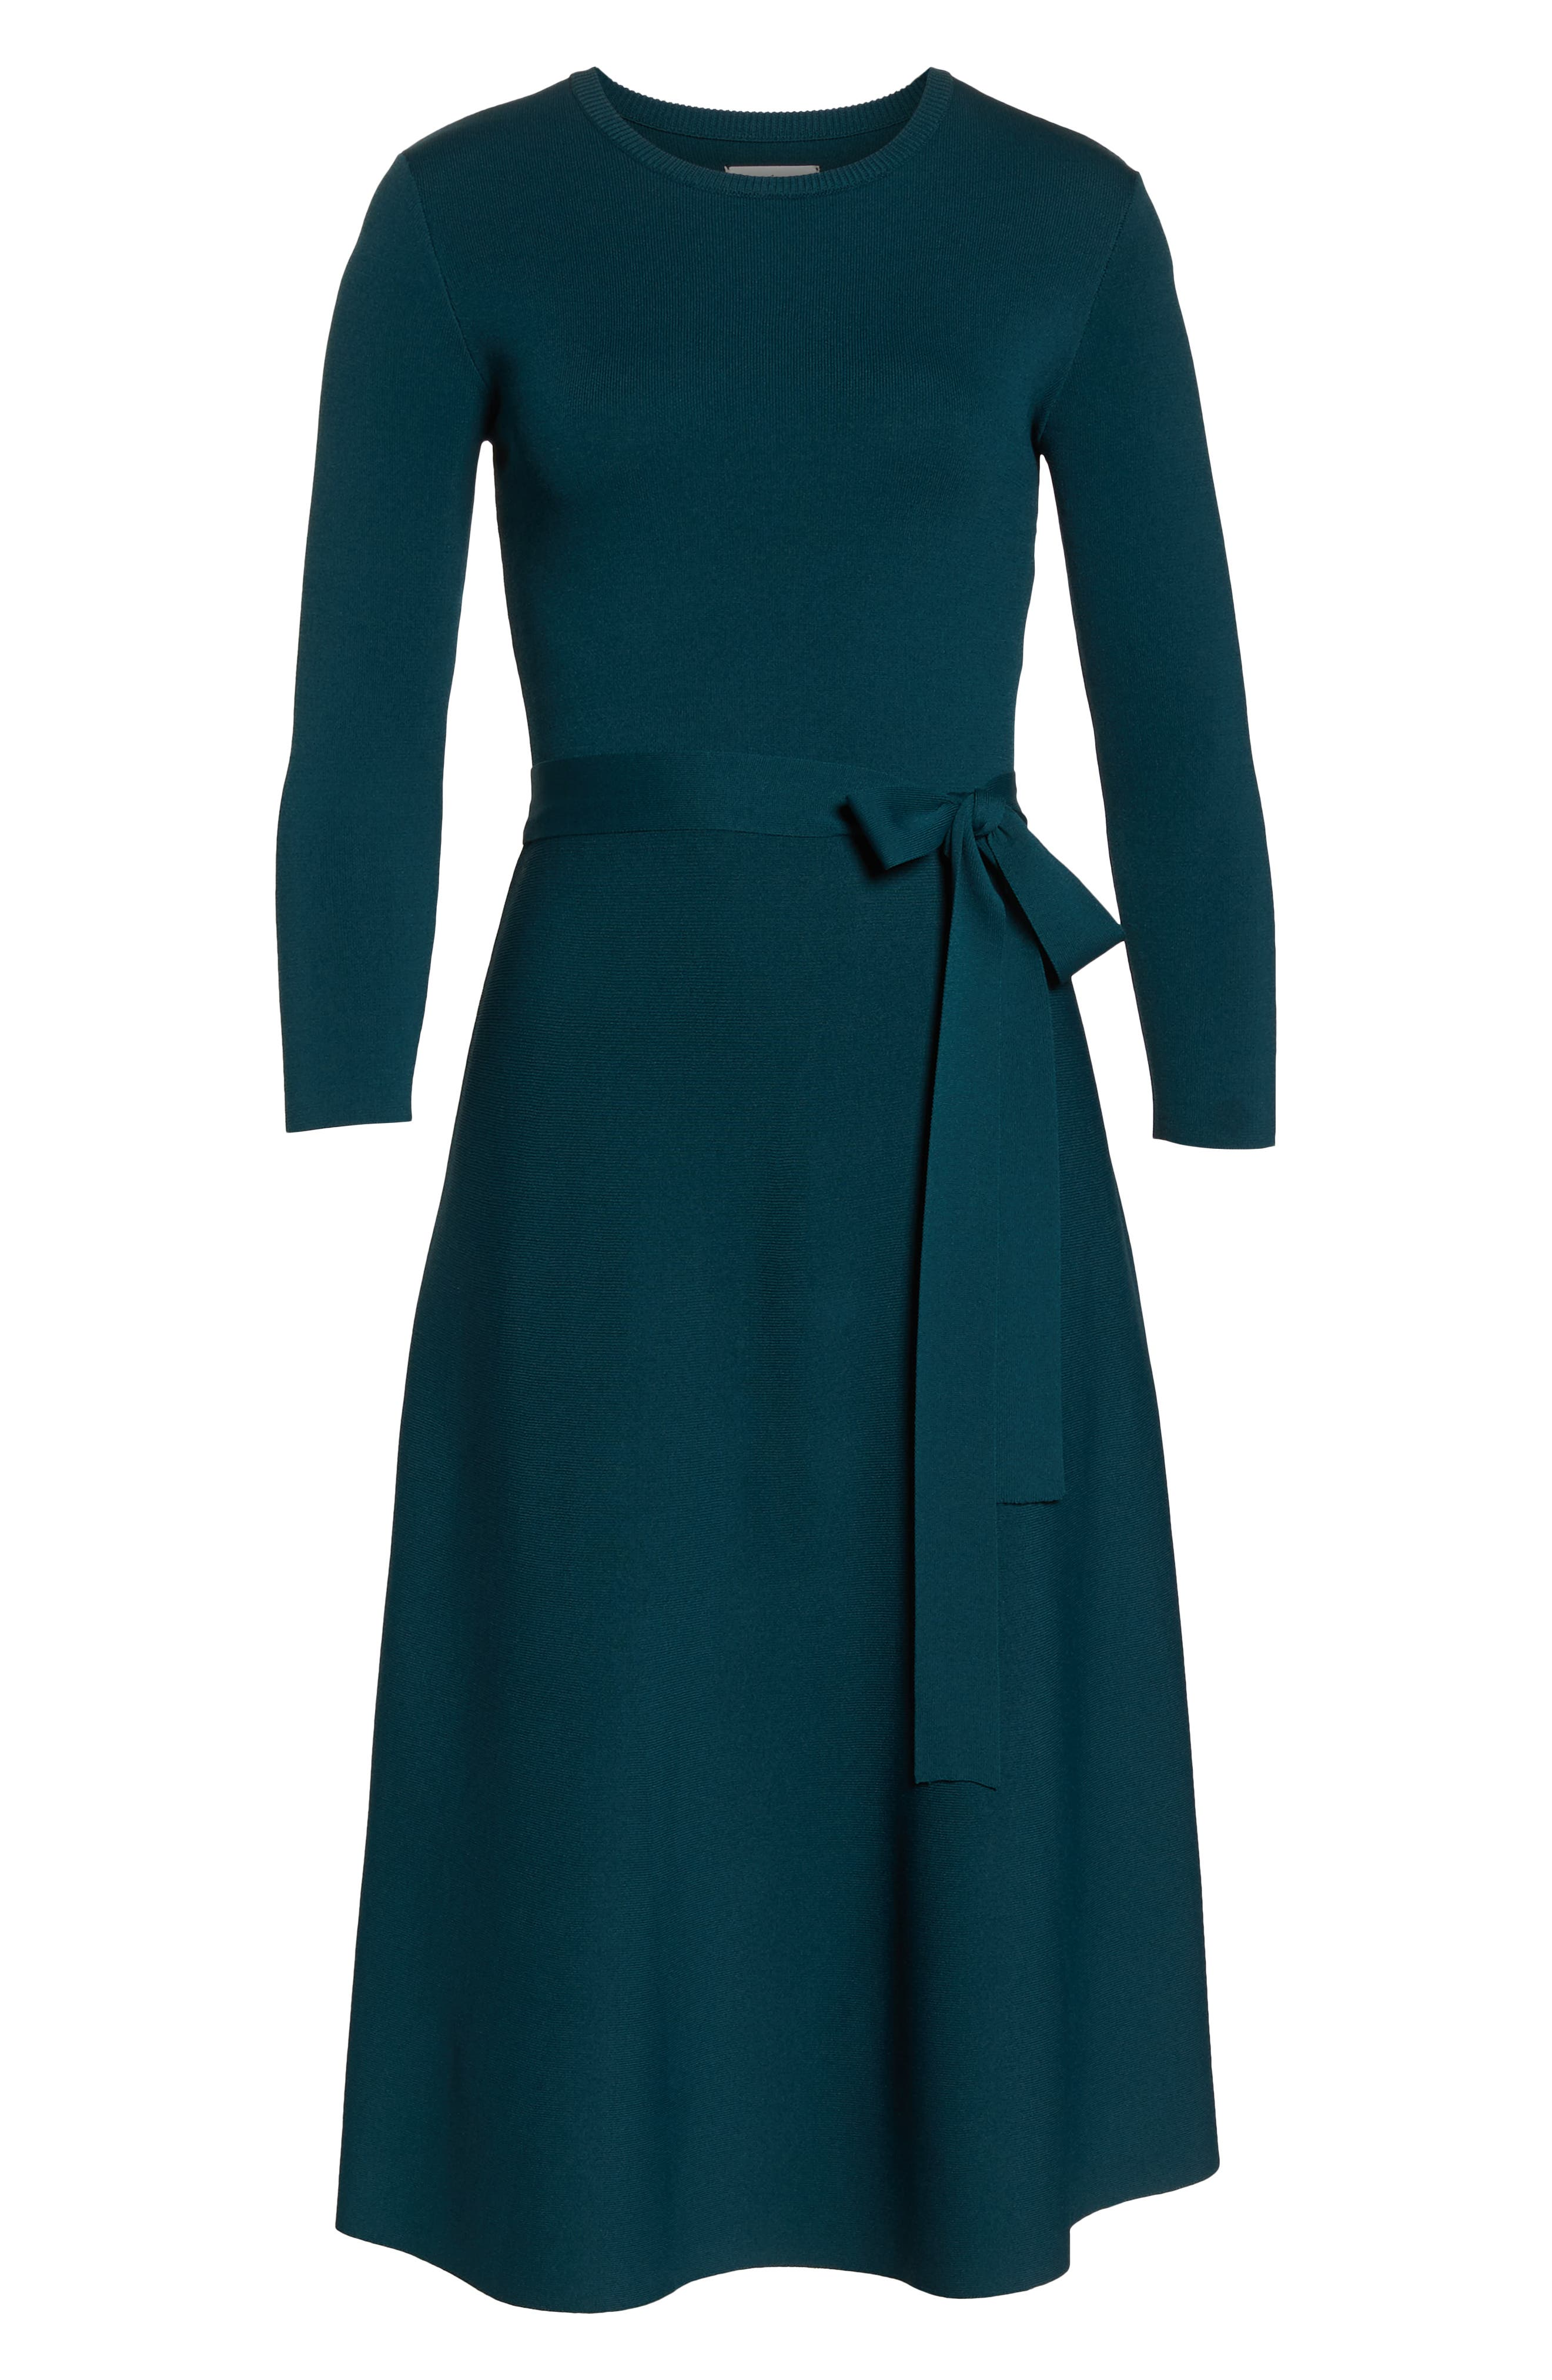 Fit & Flare Sweater Dress,                             Alternate thumbnail 7, color,                             SPRUCE